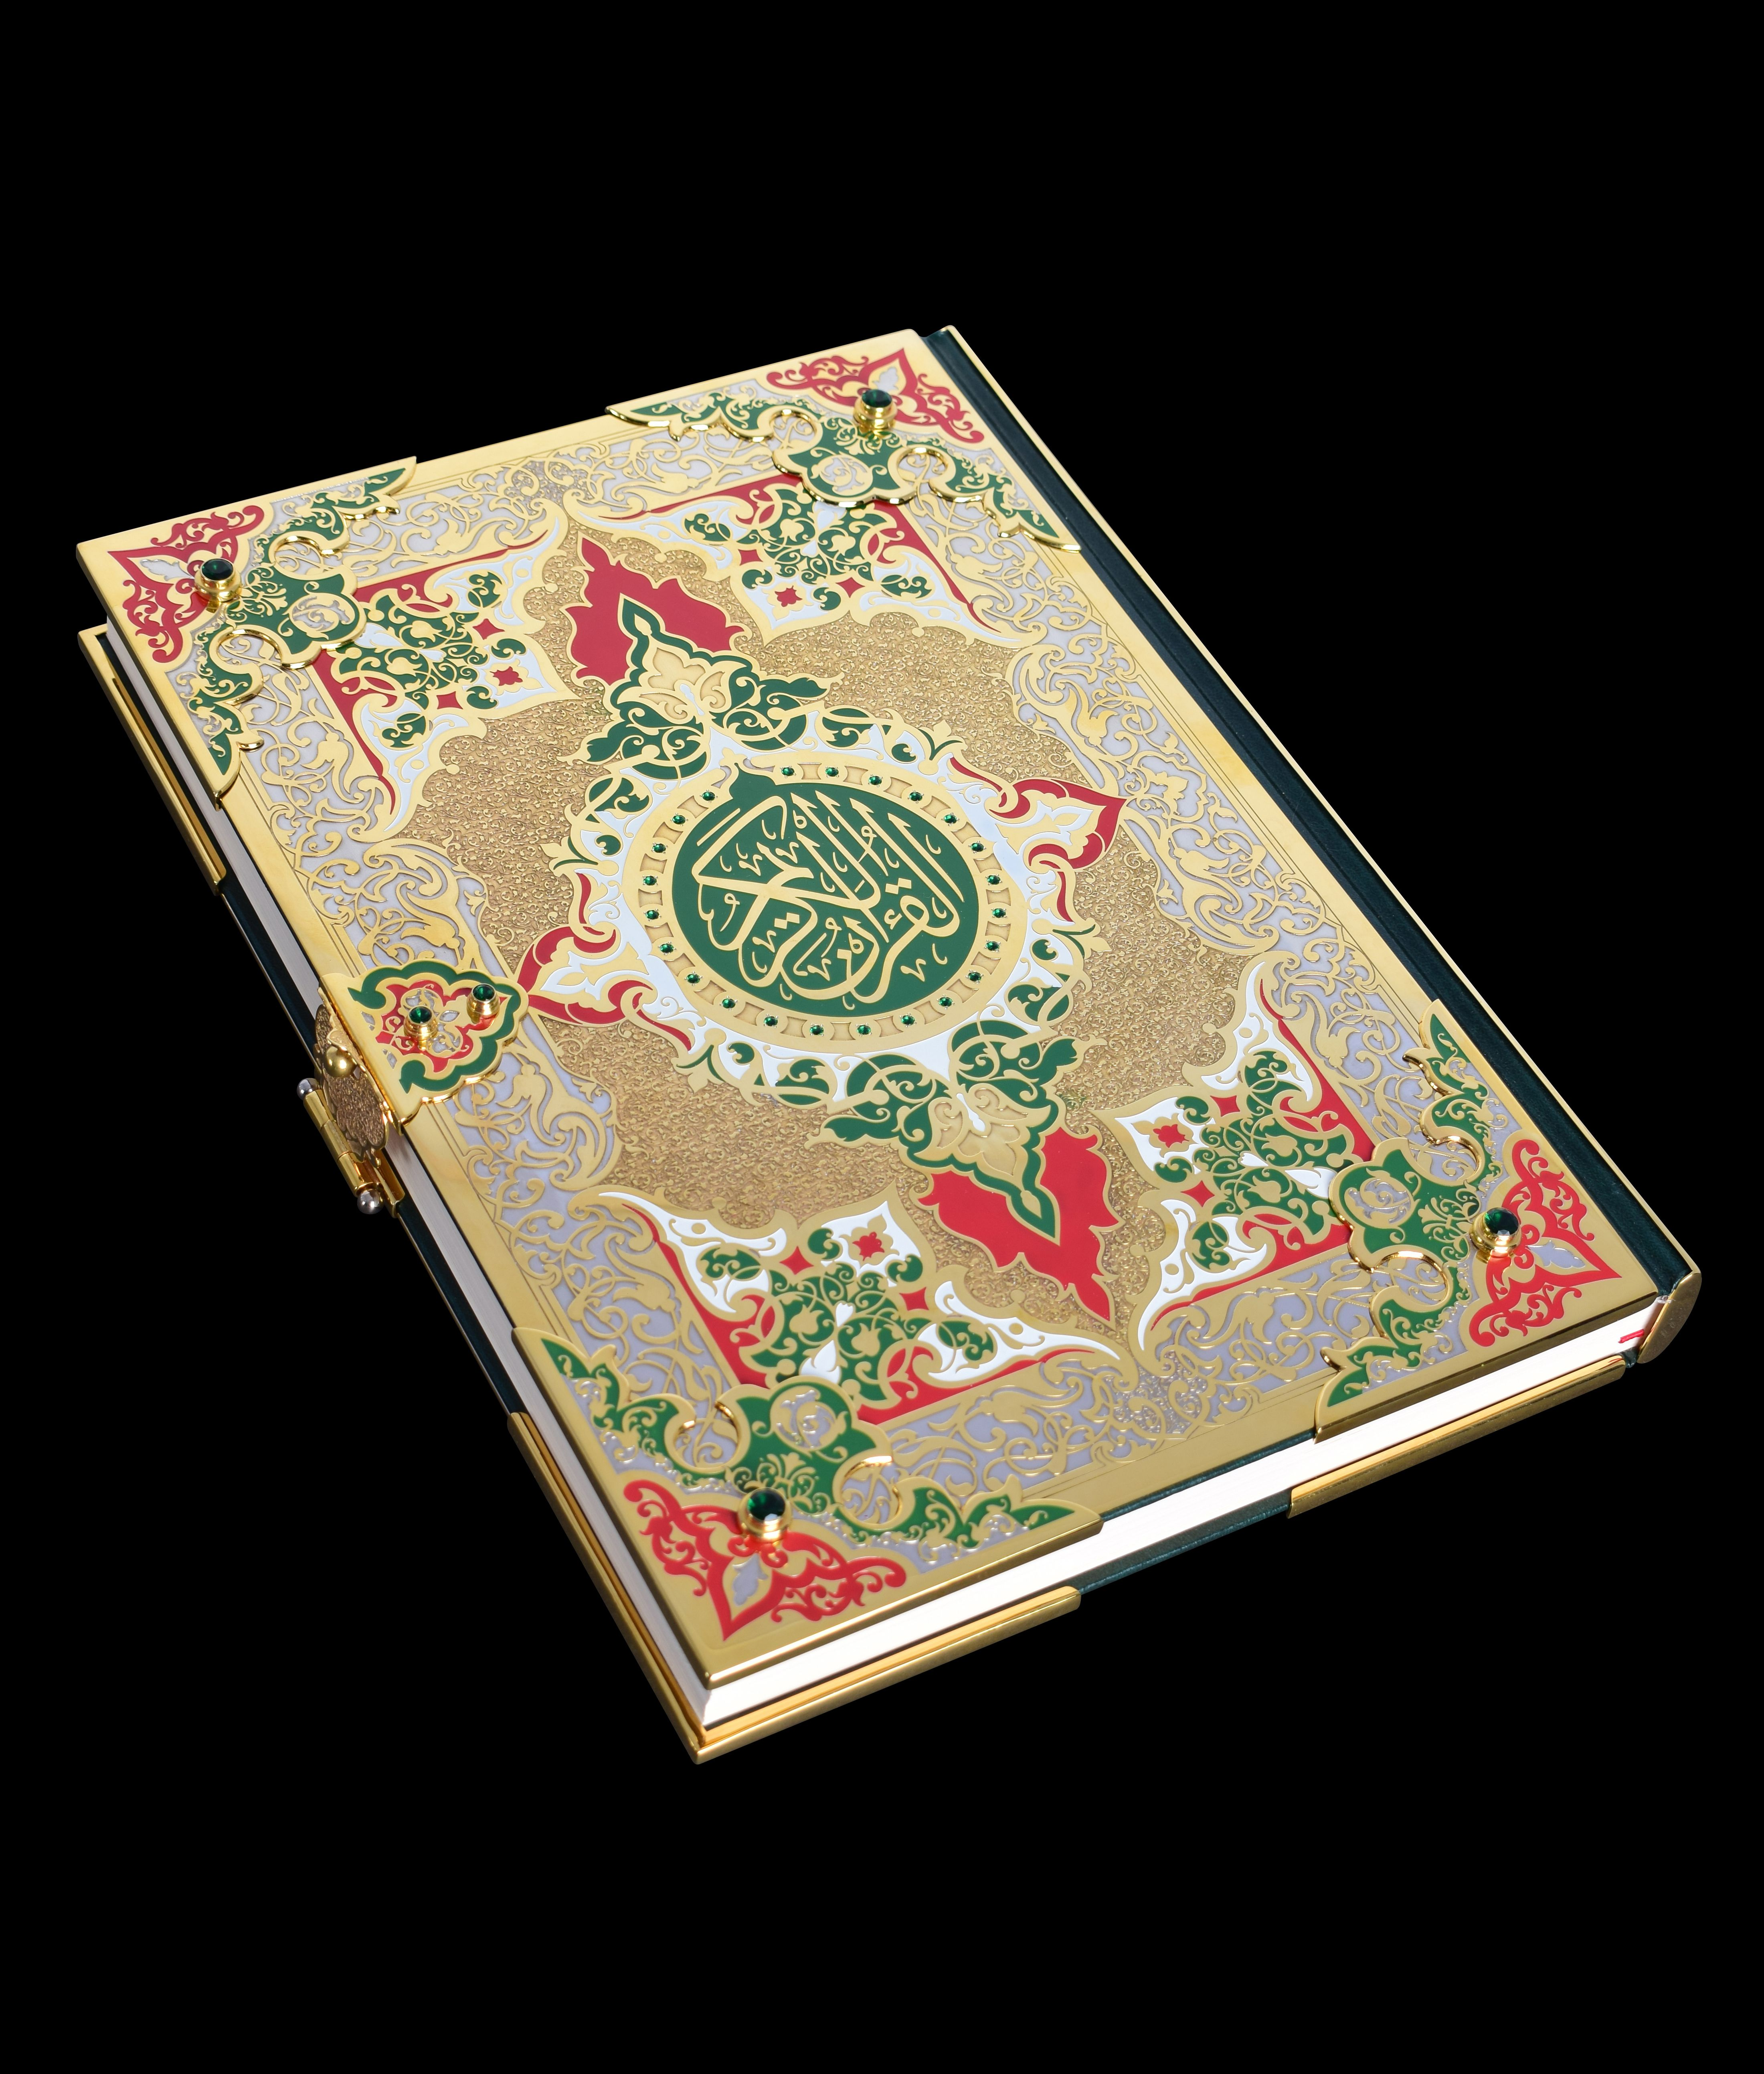 The Quran is presented in the Gift Gallery as an author's